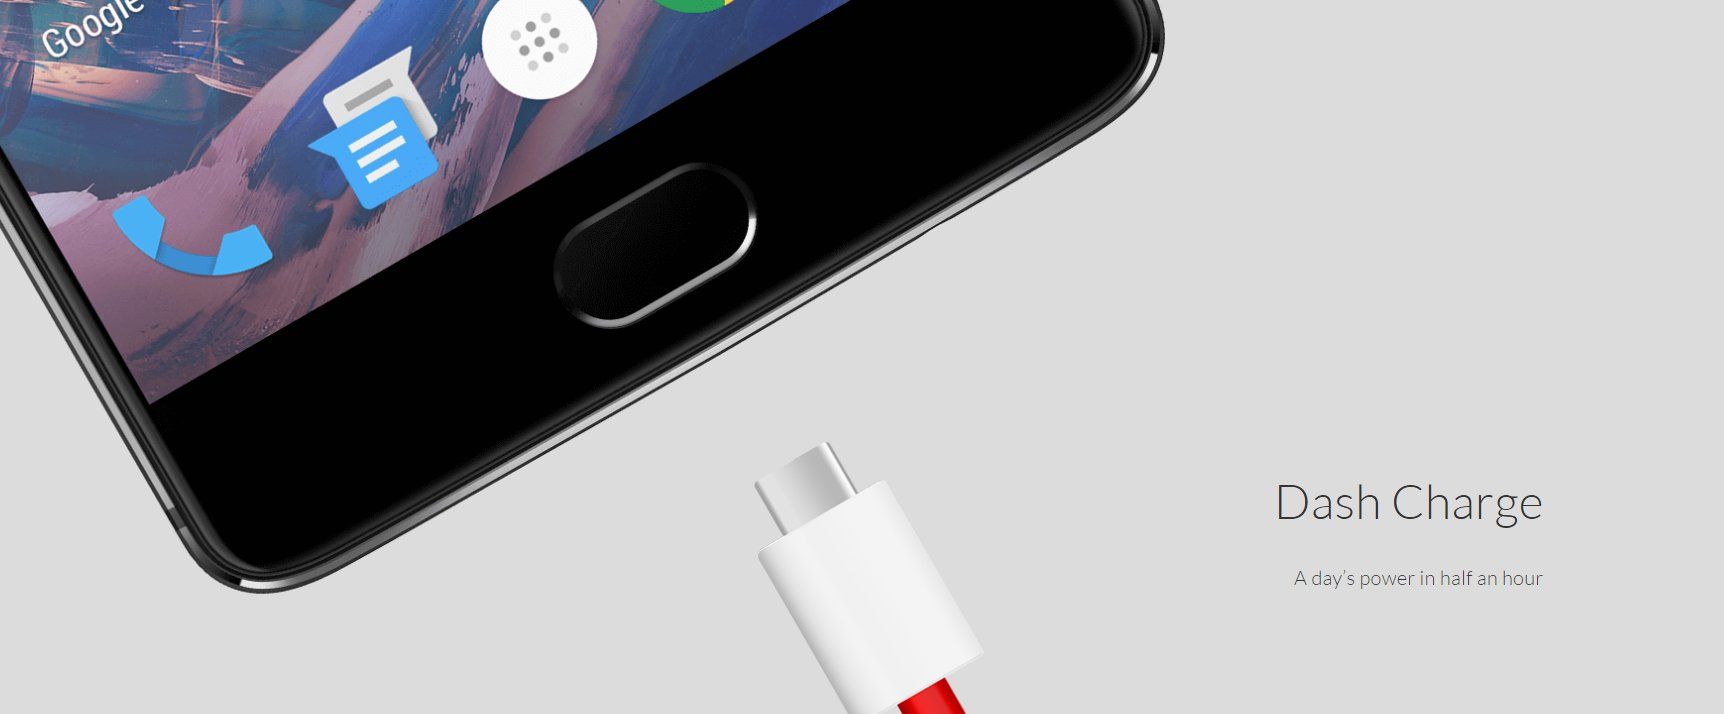 OnePlus 3 type c charger